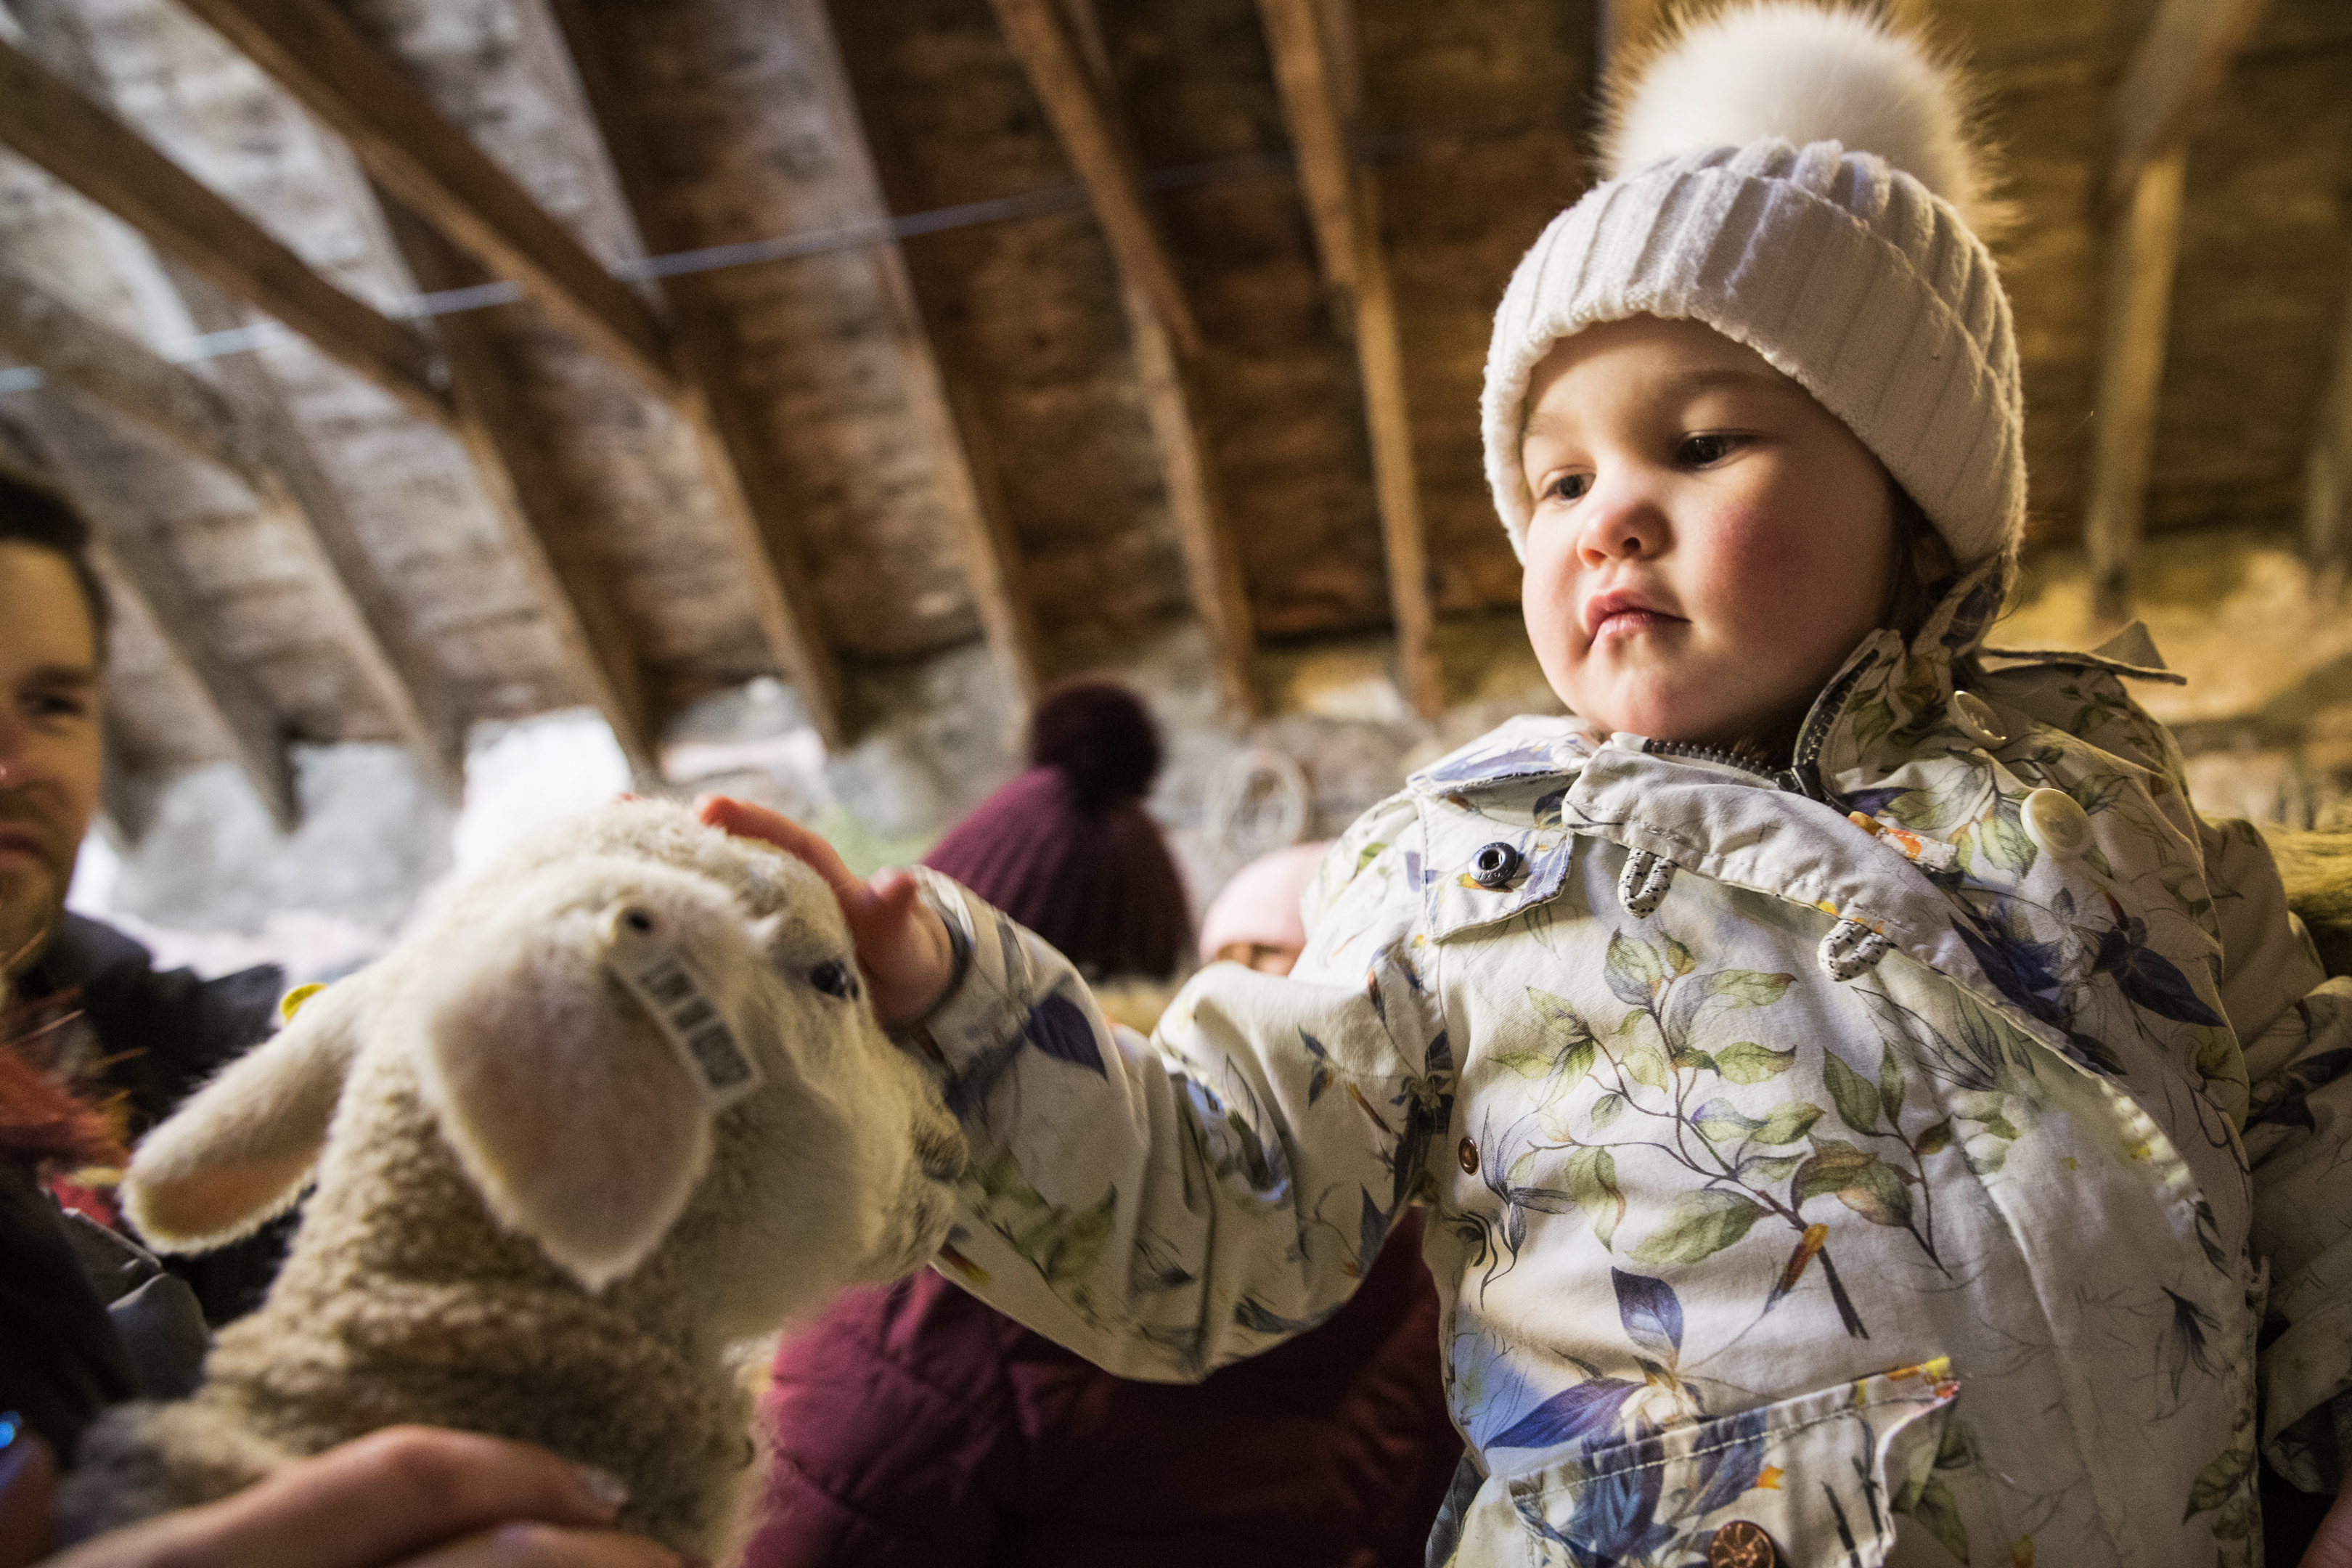 Lexi Cheyne, 3, from Banff meets her first lamb.